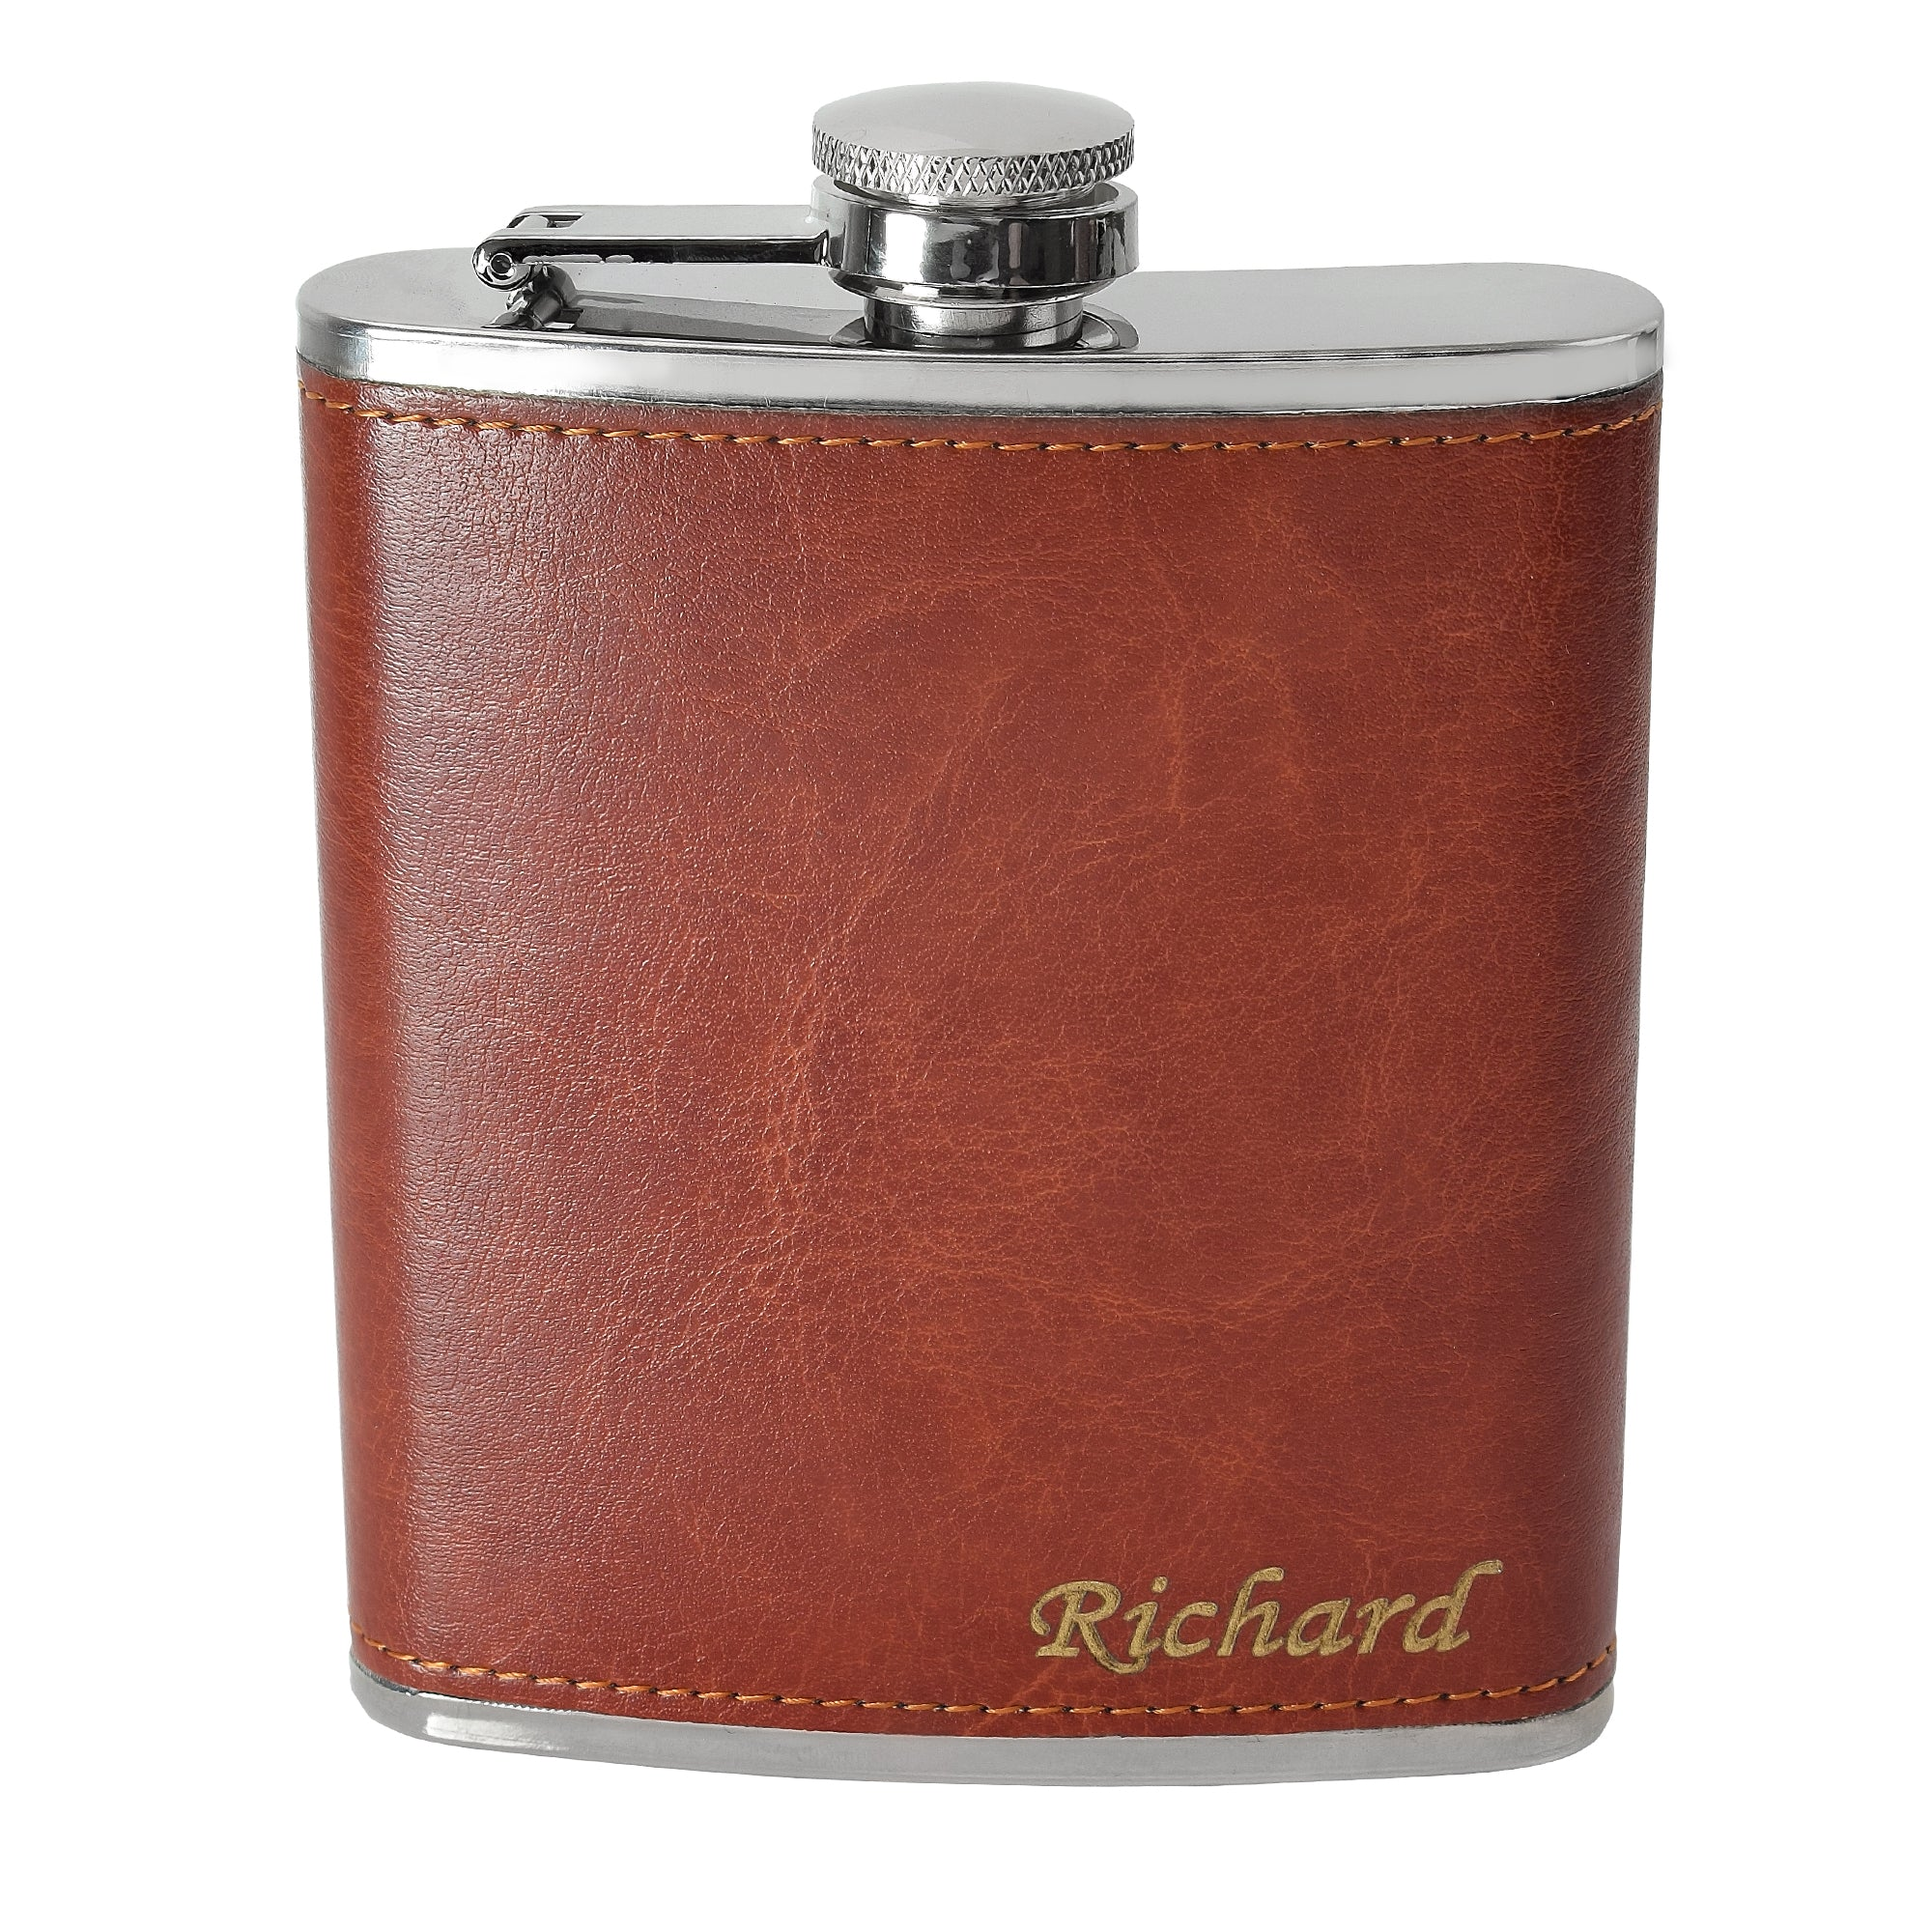 7oz Rustic Hip Flask Gift Set